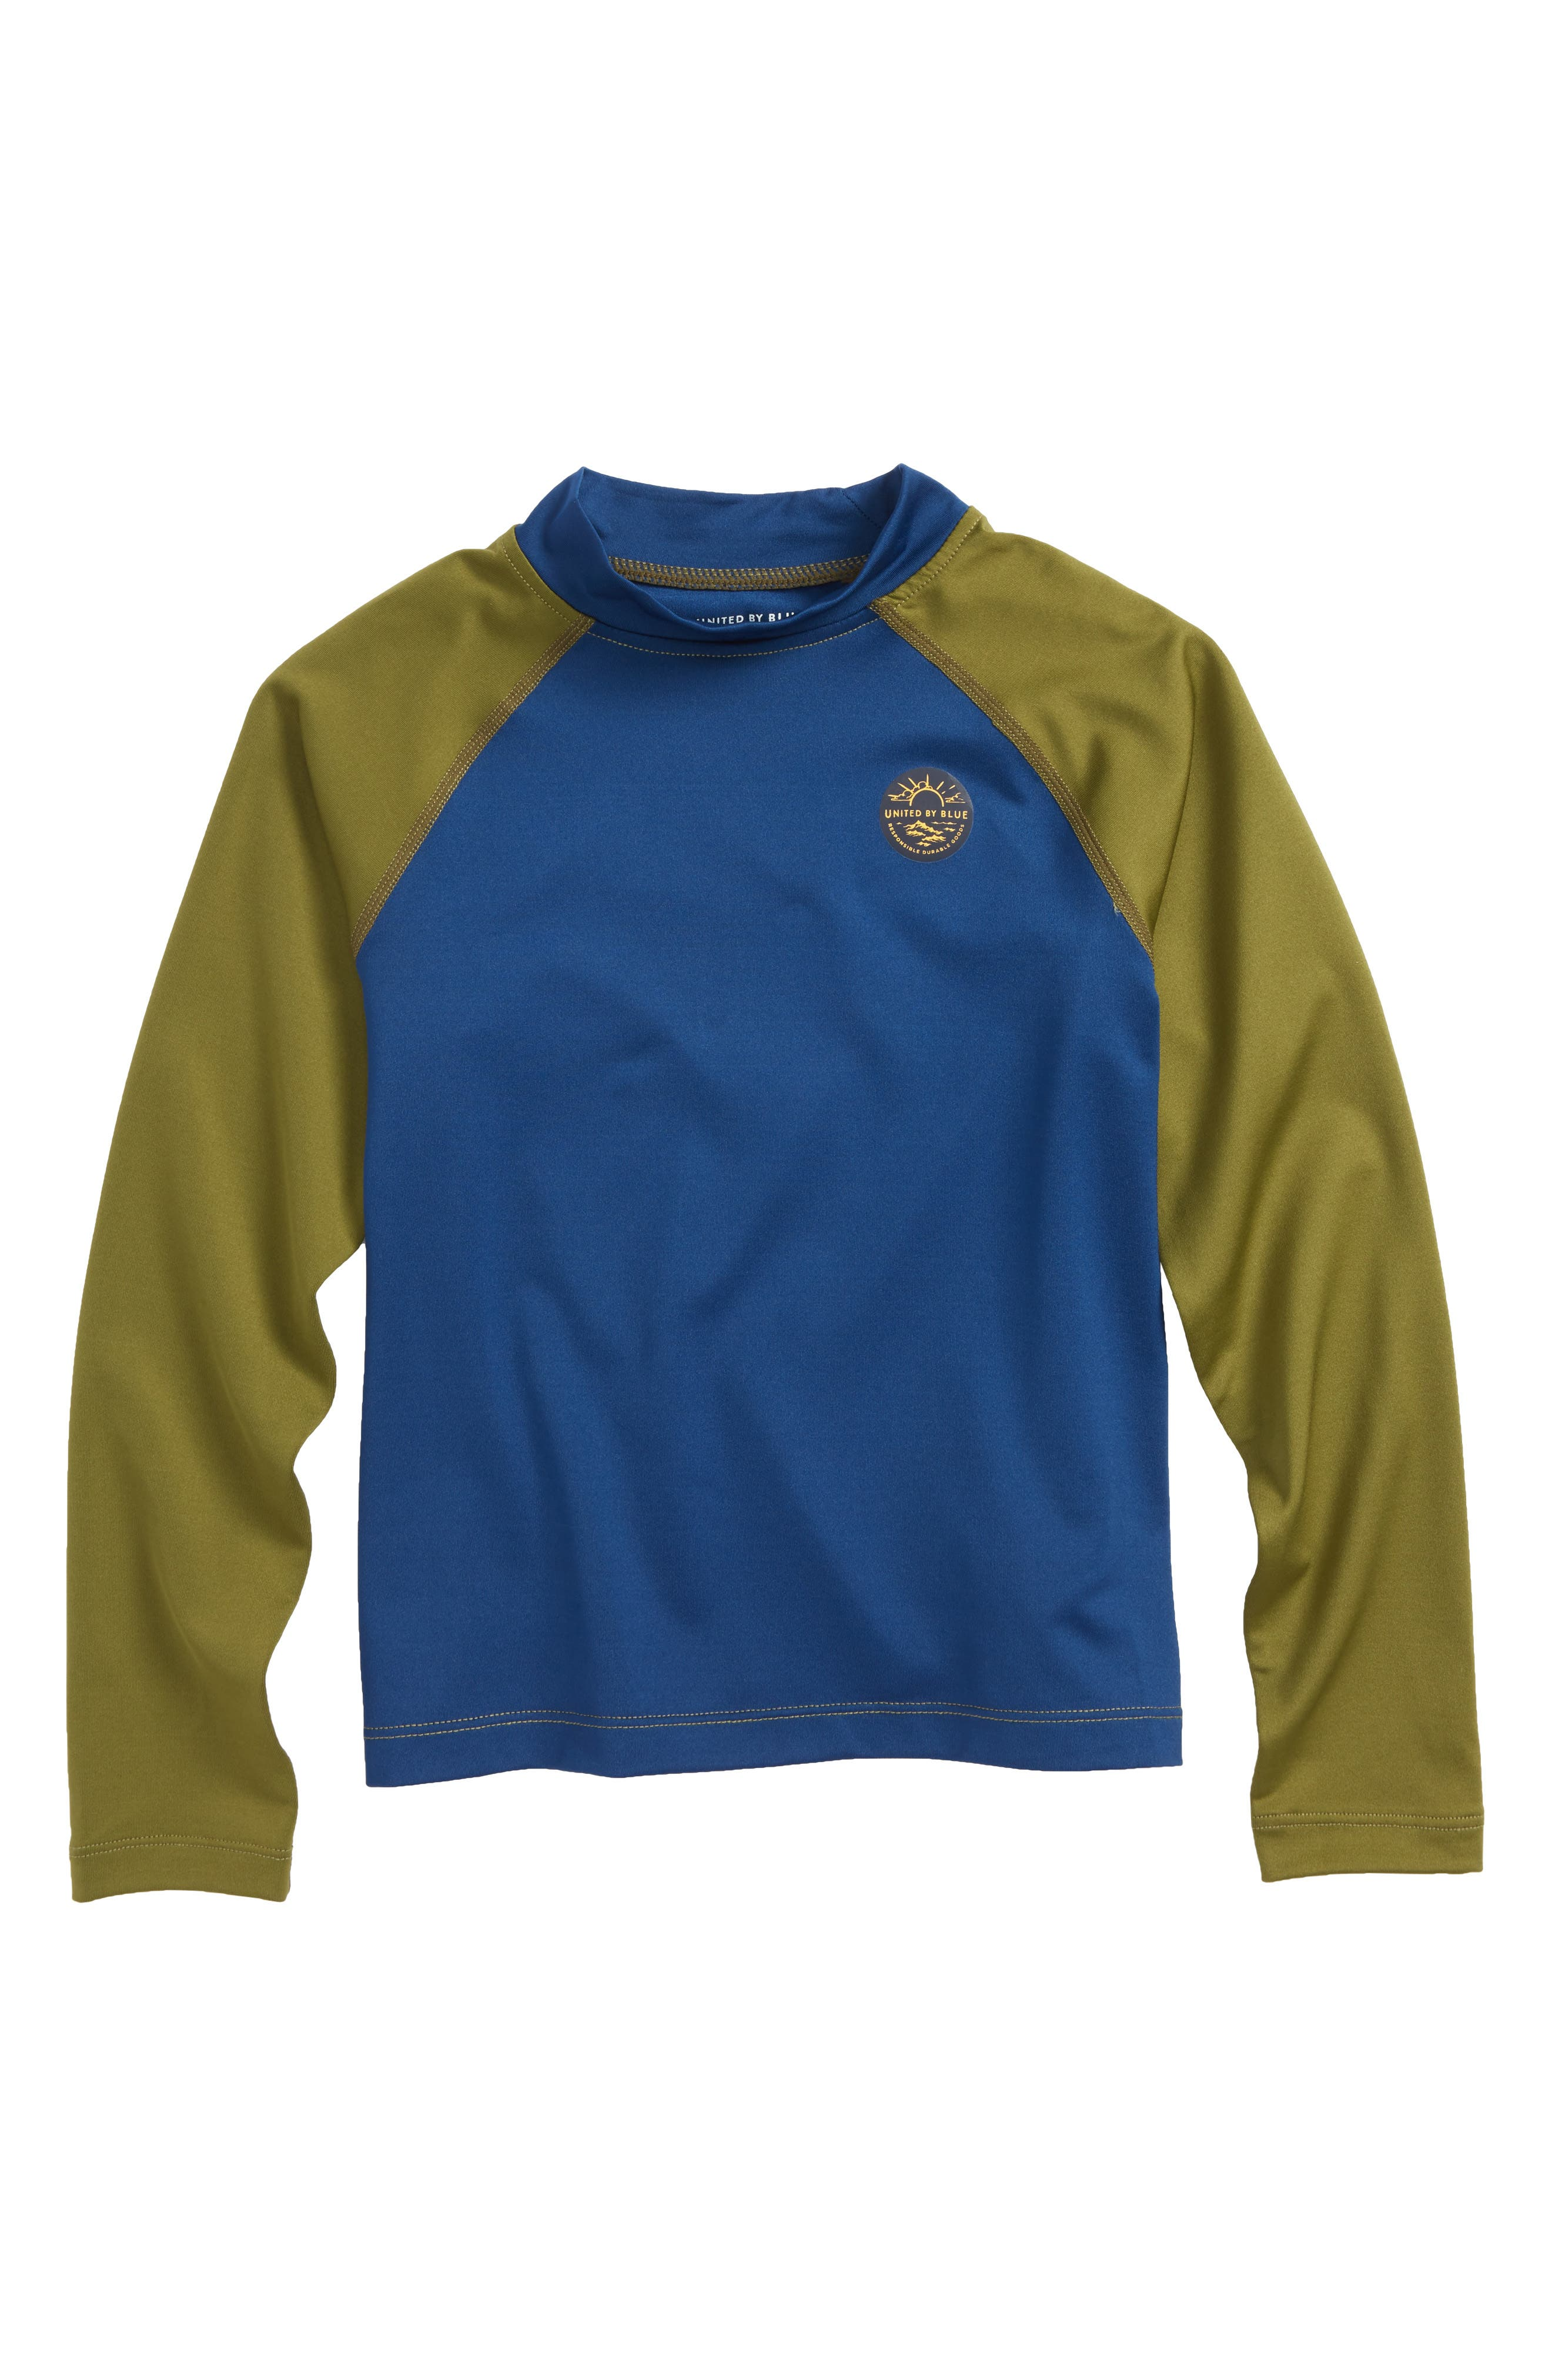 Long Sleeve Rashguard,                         Main,                         color, Navy